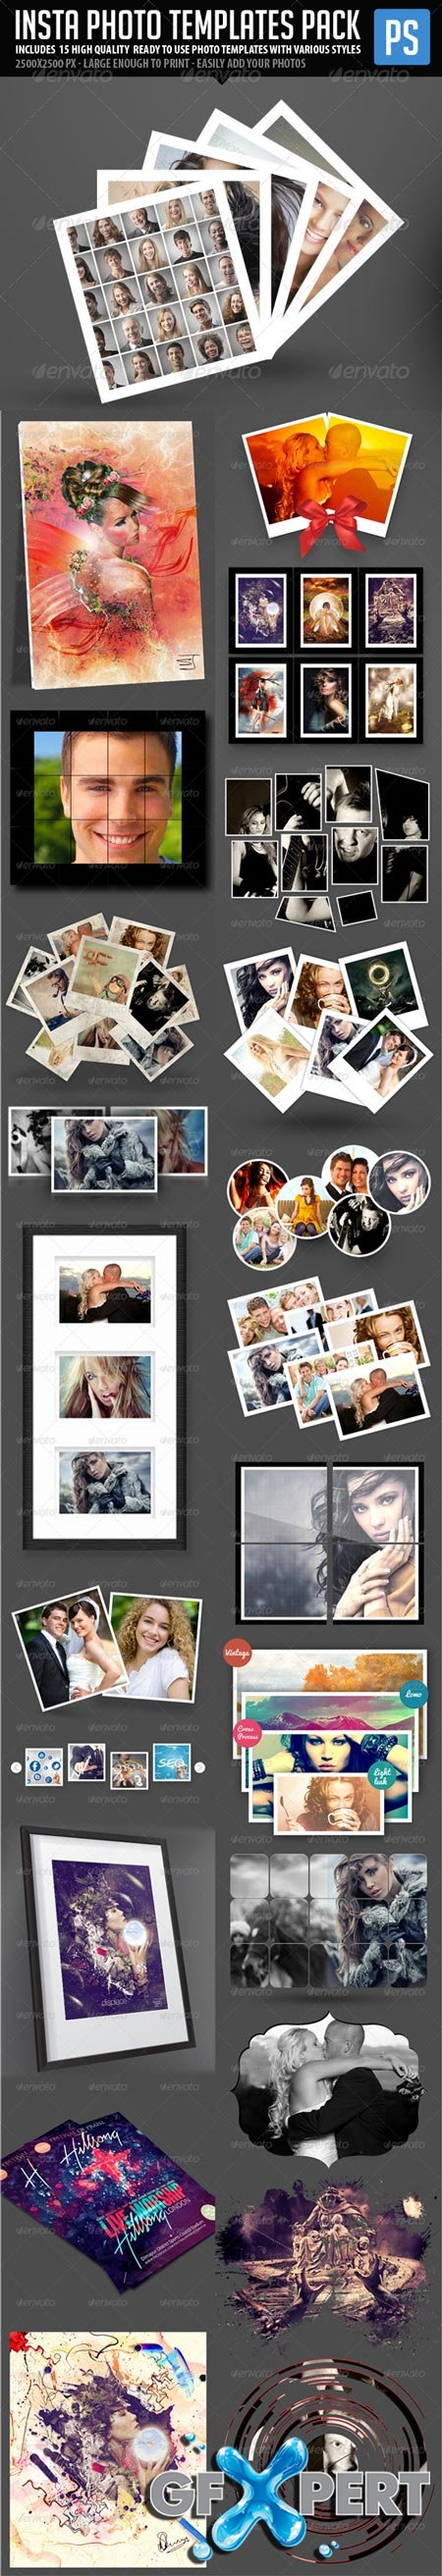 GraphicRiver - Insta Photo Templates Pack (23in1) 6063139